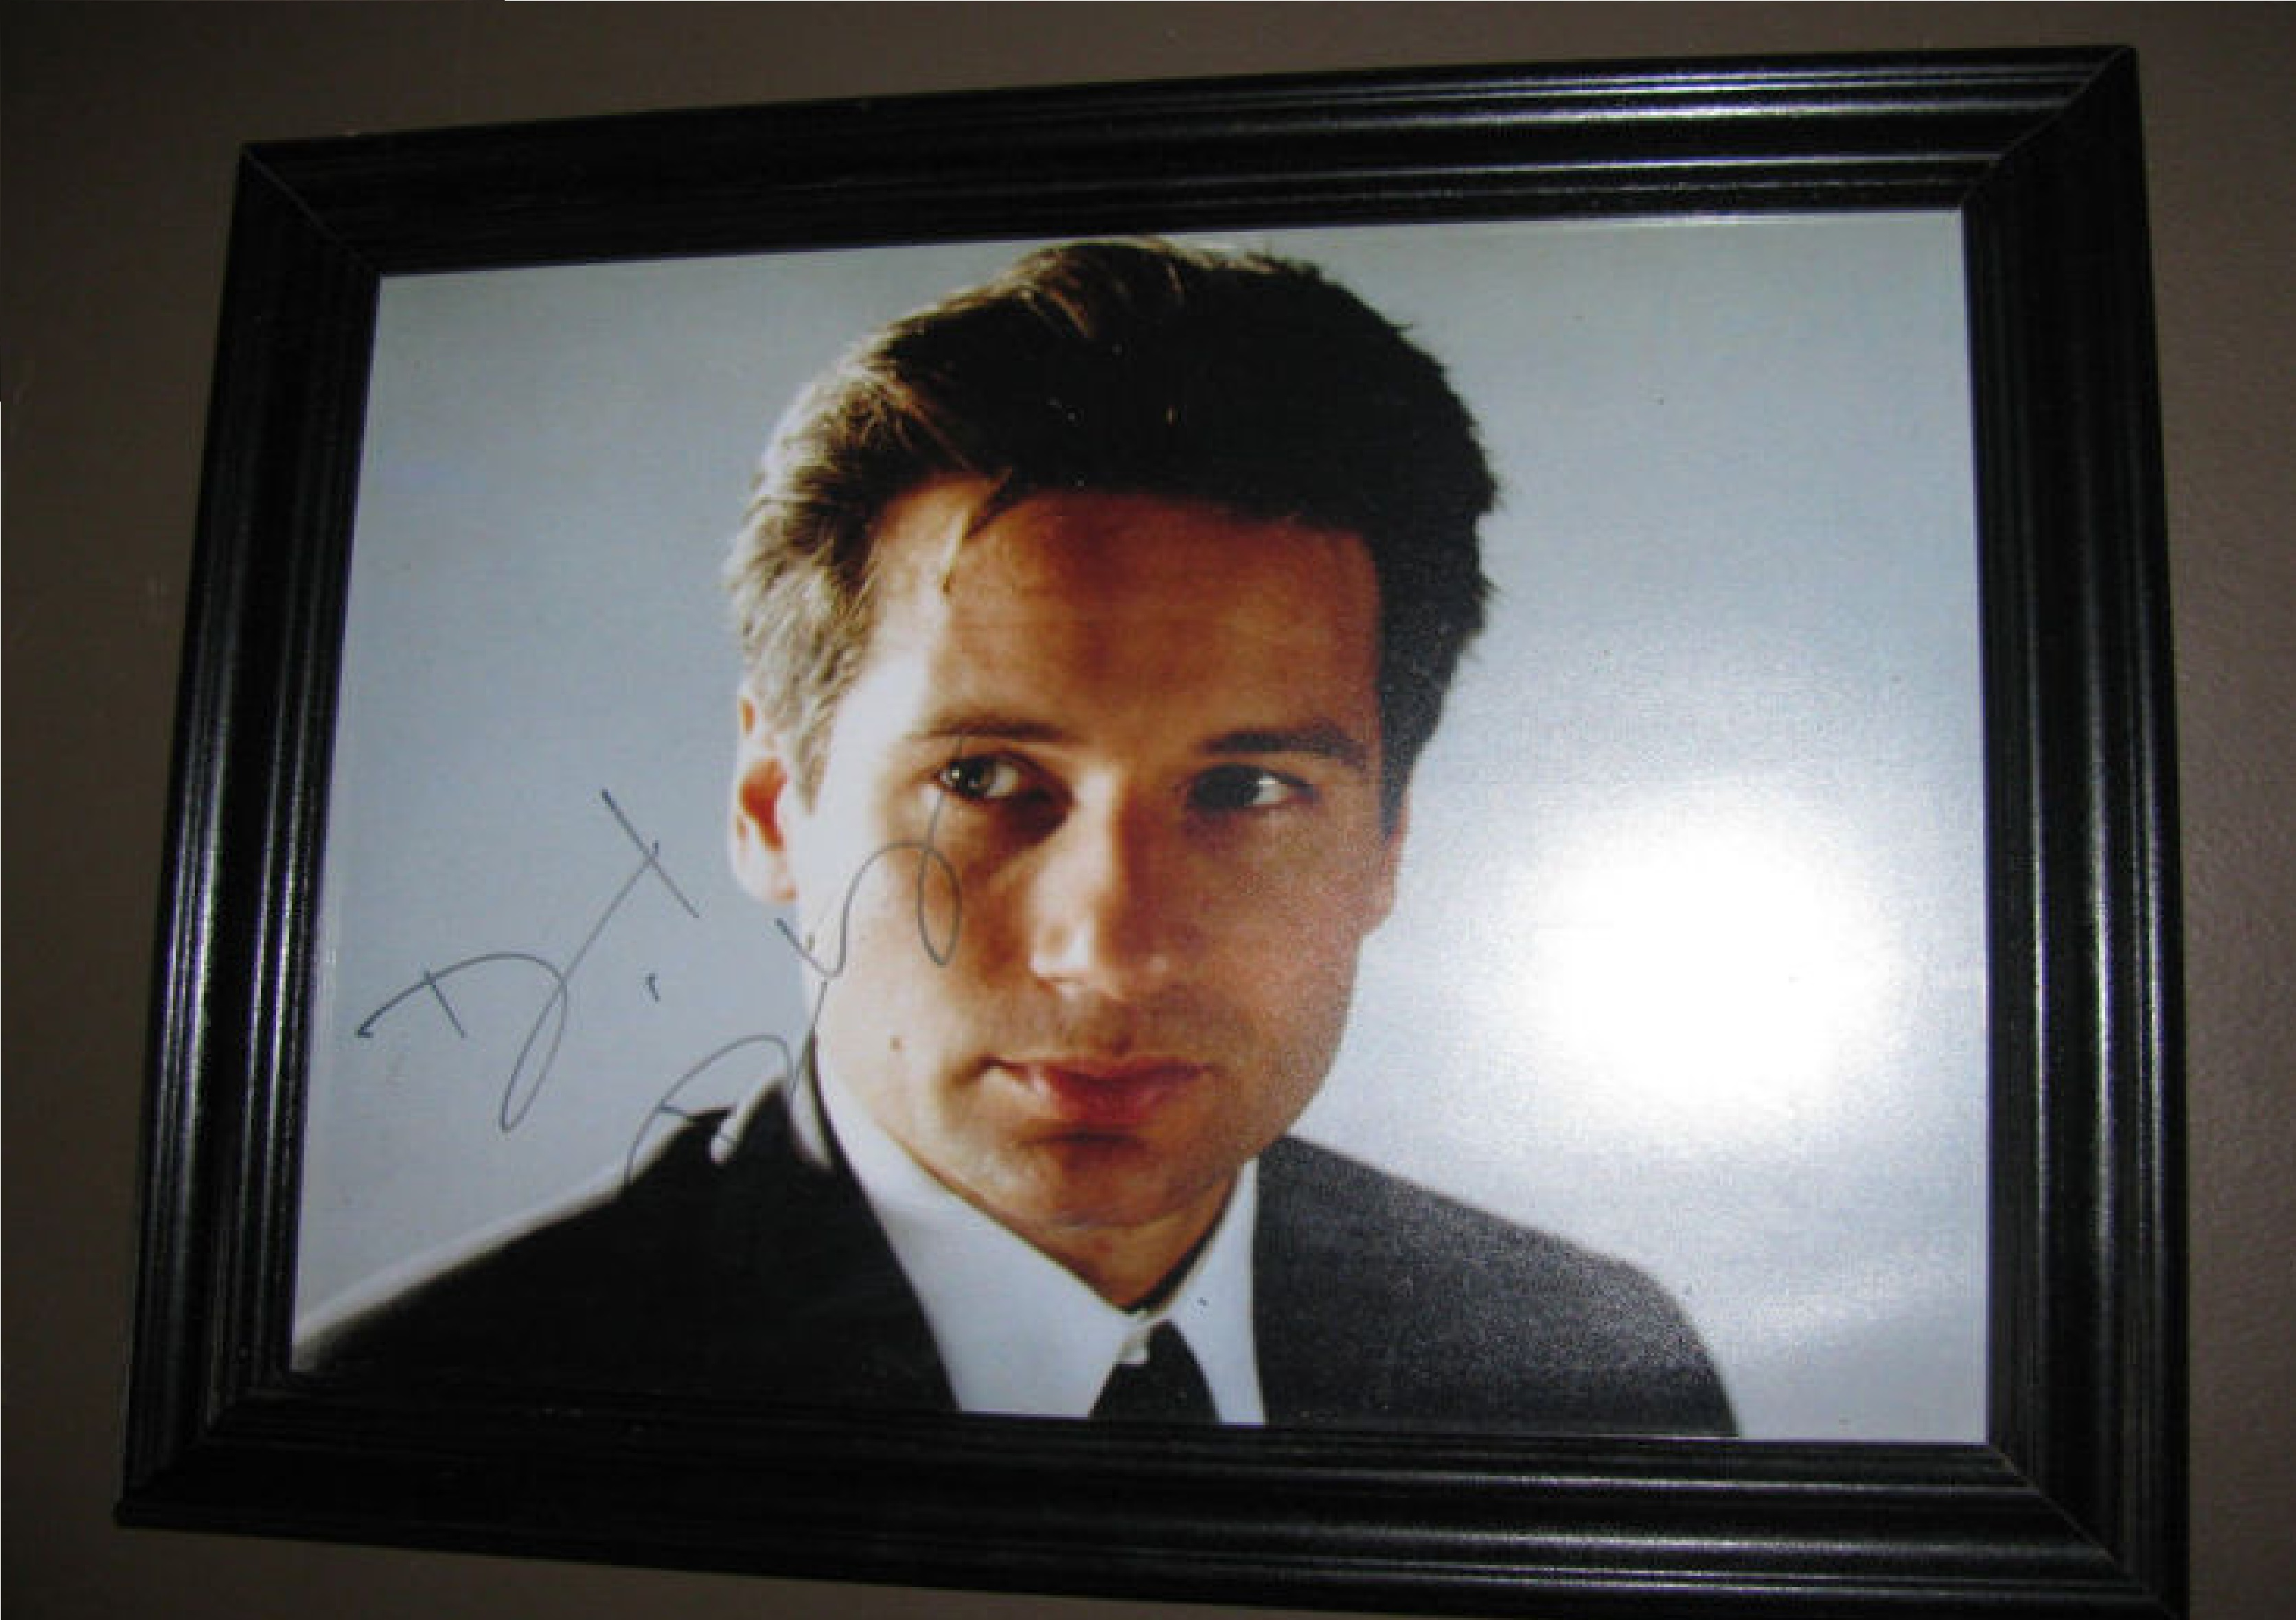 DAVID DUCHOVNY X-FILES SIGNED AUTHENTIC 8X10 PHOTO AUTOGRAPHED